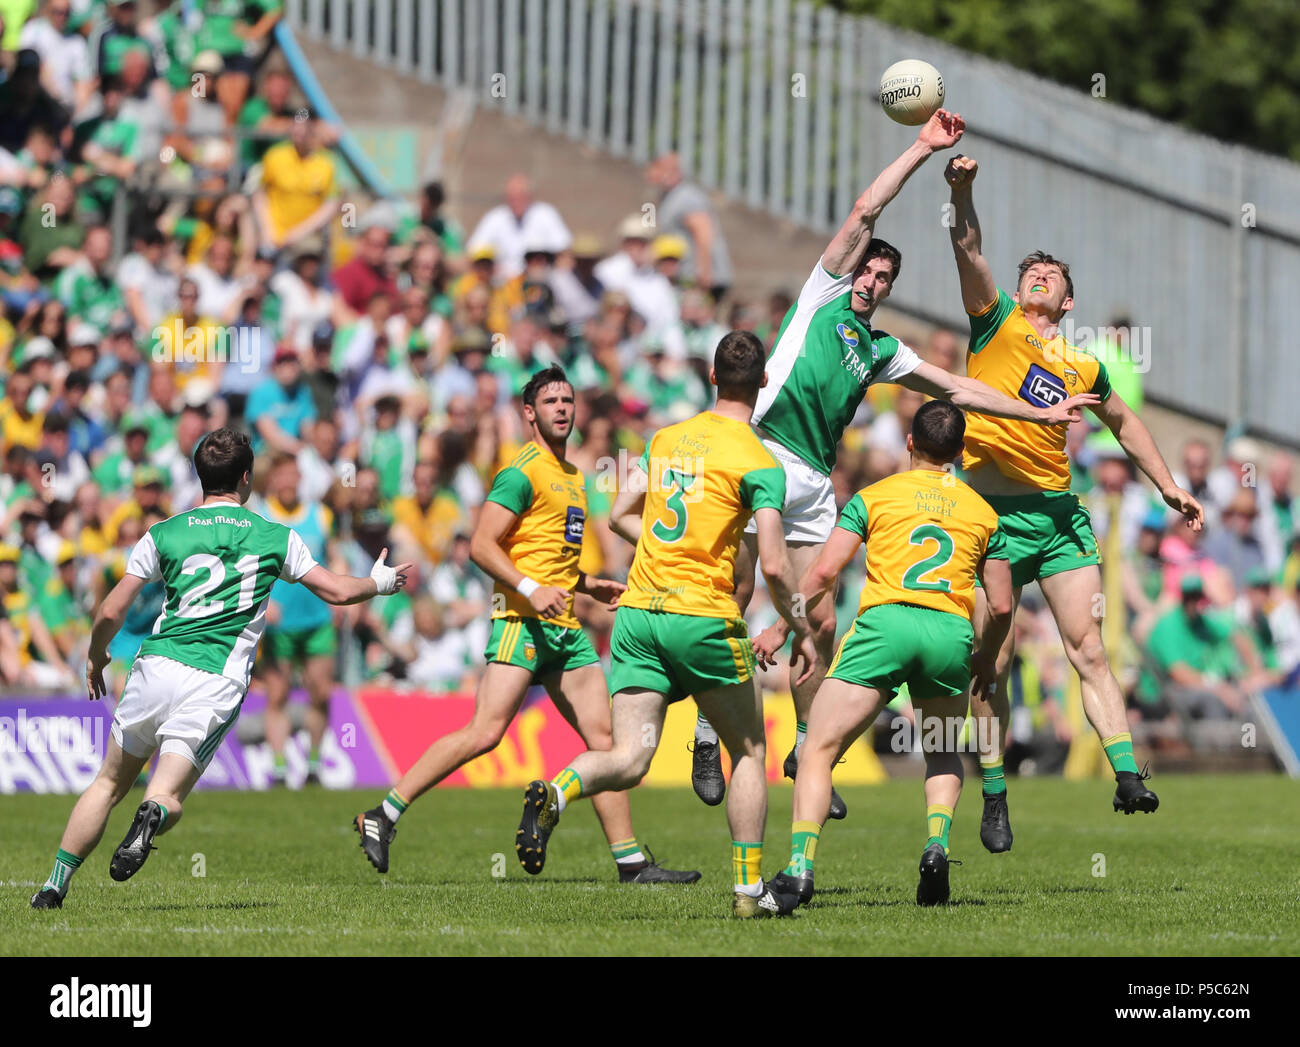 Fermanagh's Eoin Donnelly and Donegal's Hugh McFadden jump for the ball during the GAA Ulster Final in Clones, Co Monaghan, Ireland. - Stock Image